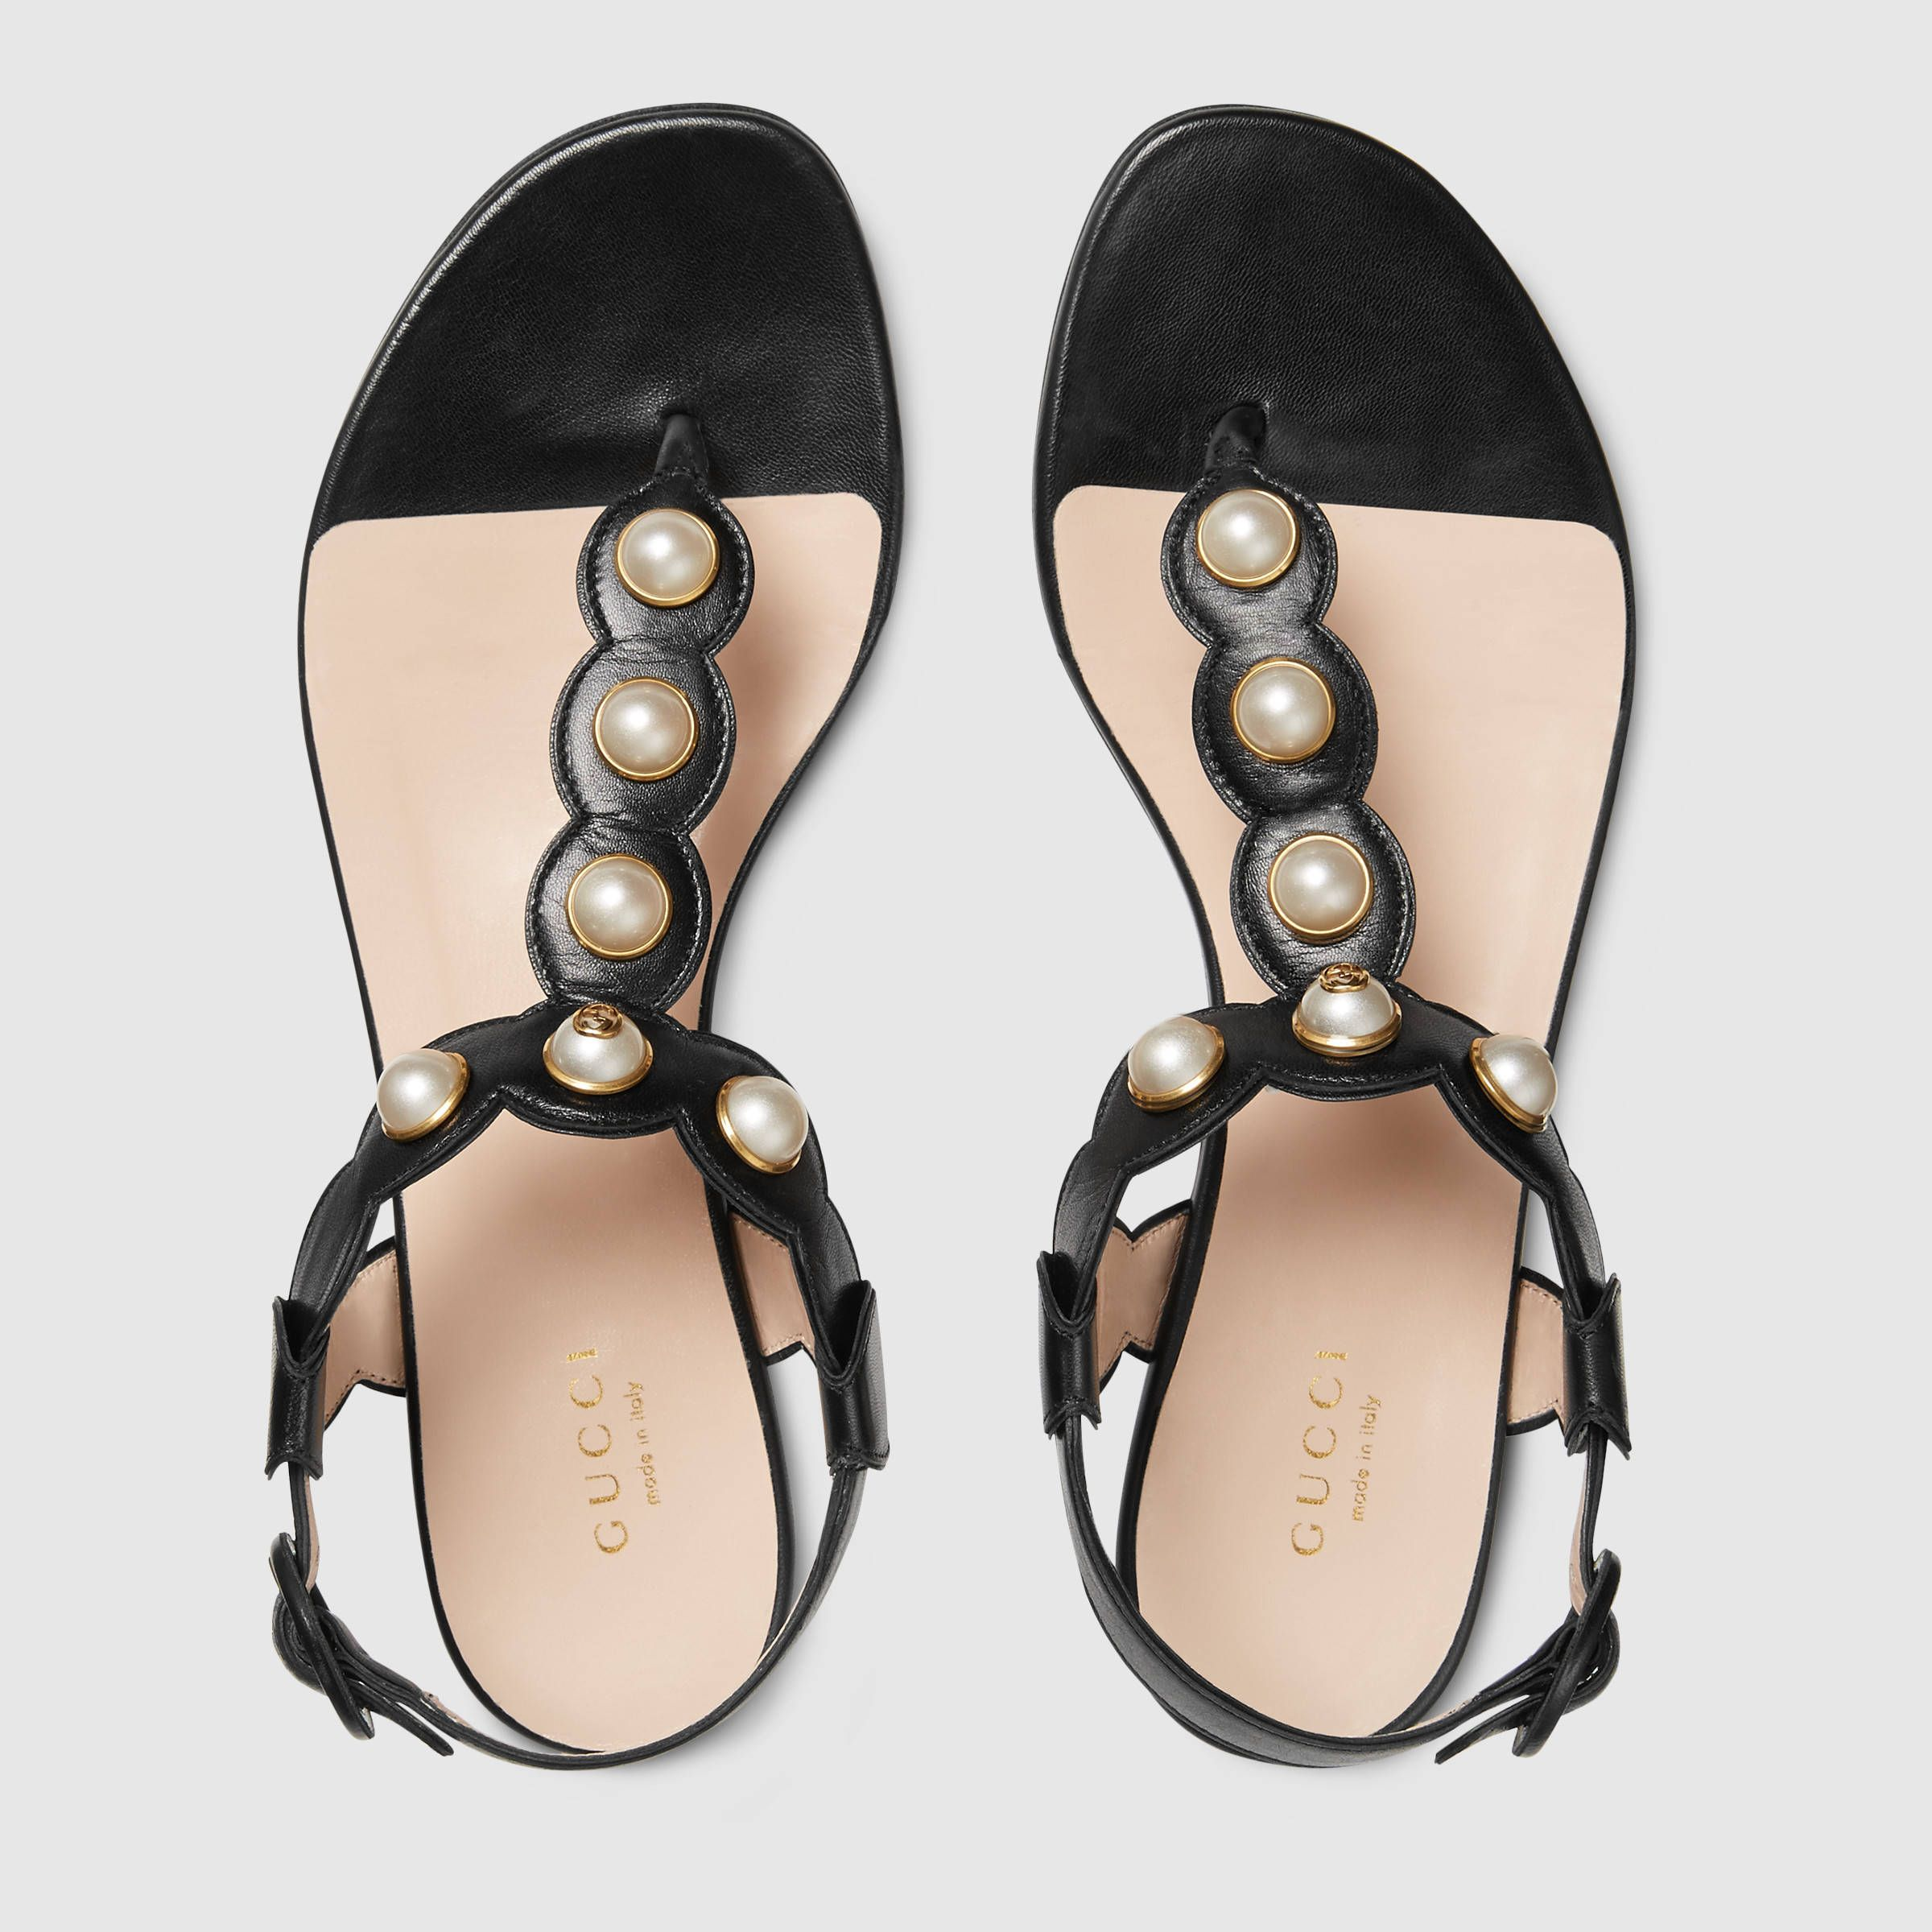 da04dca400ee Gucci Women - Willow leather thong sandal - 424085C9D001000 Gucci Pearl  leather sandals - summer 2016